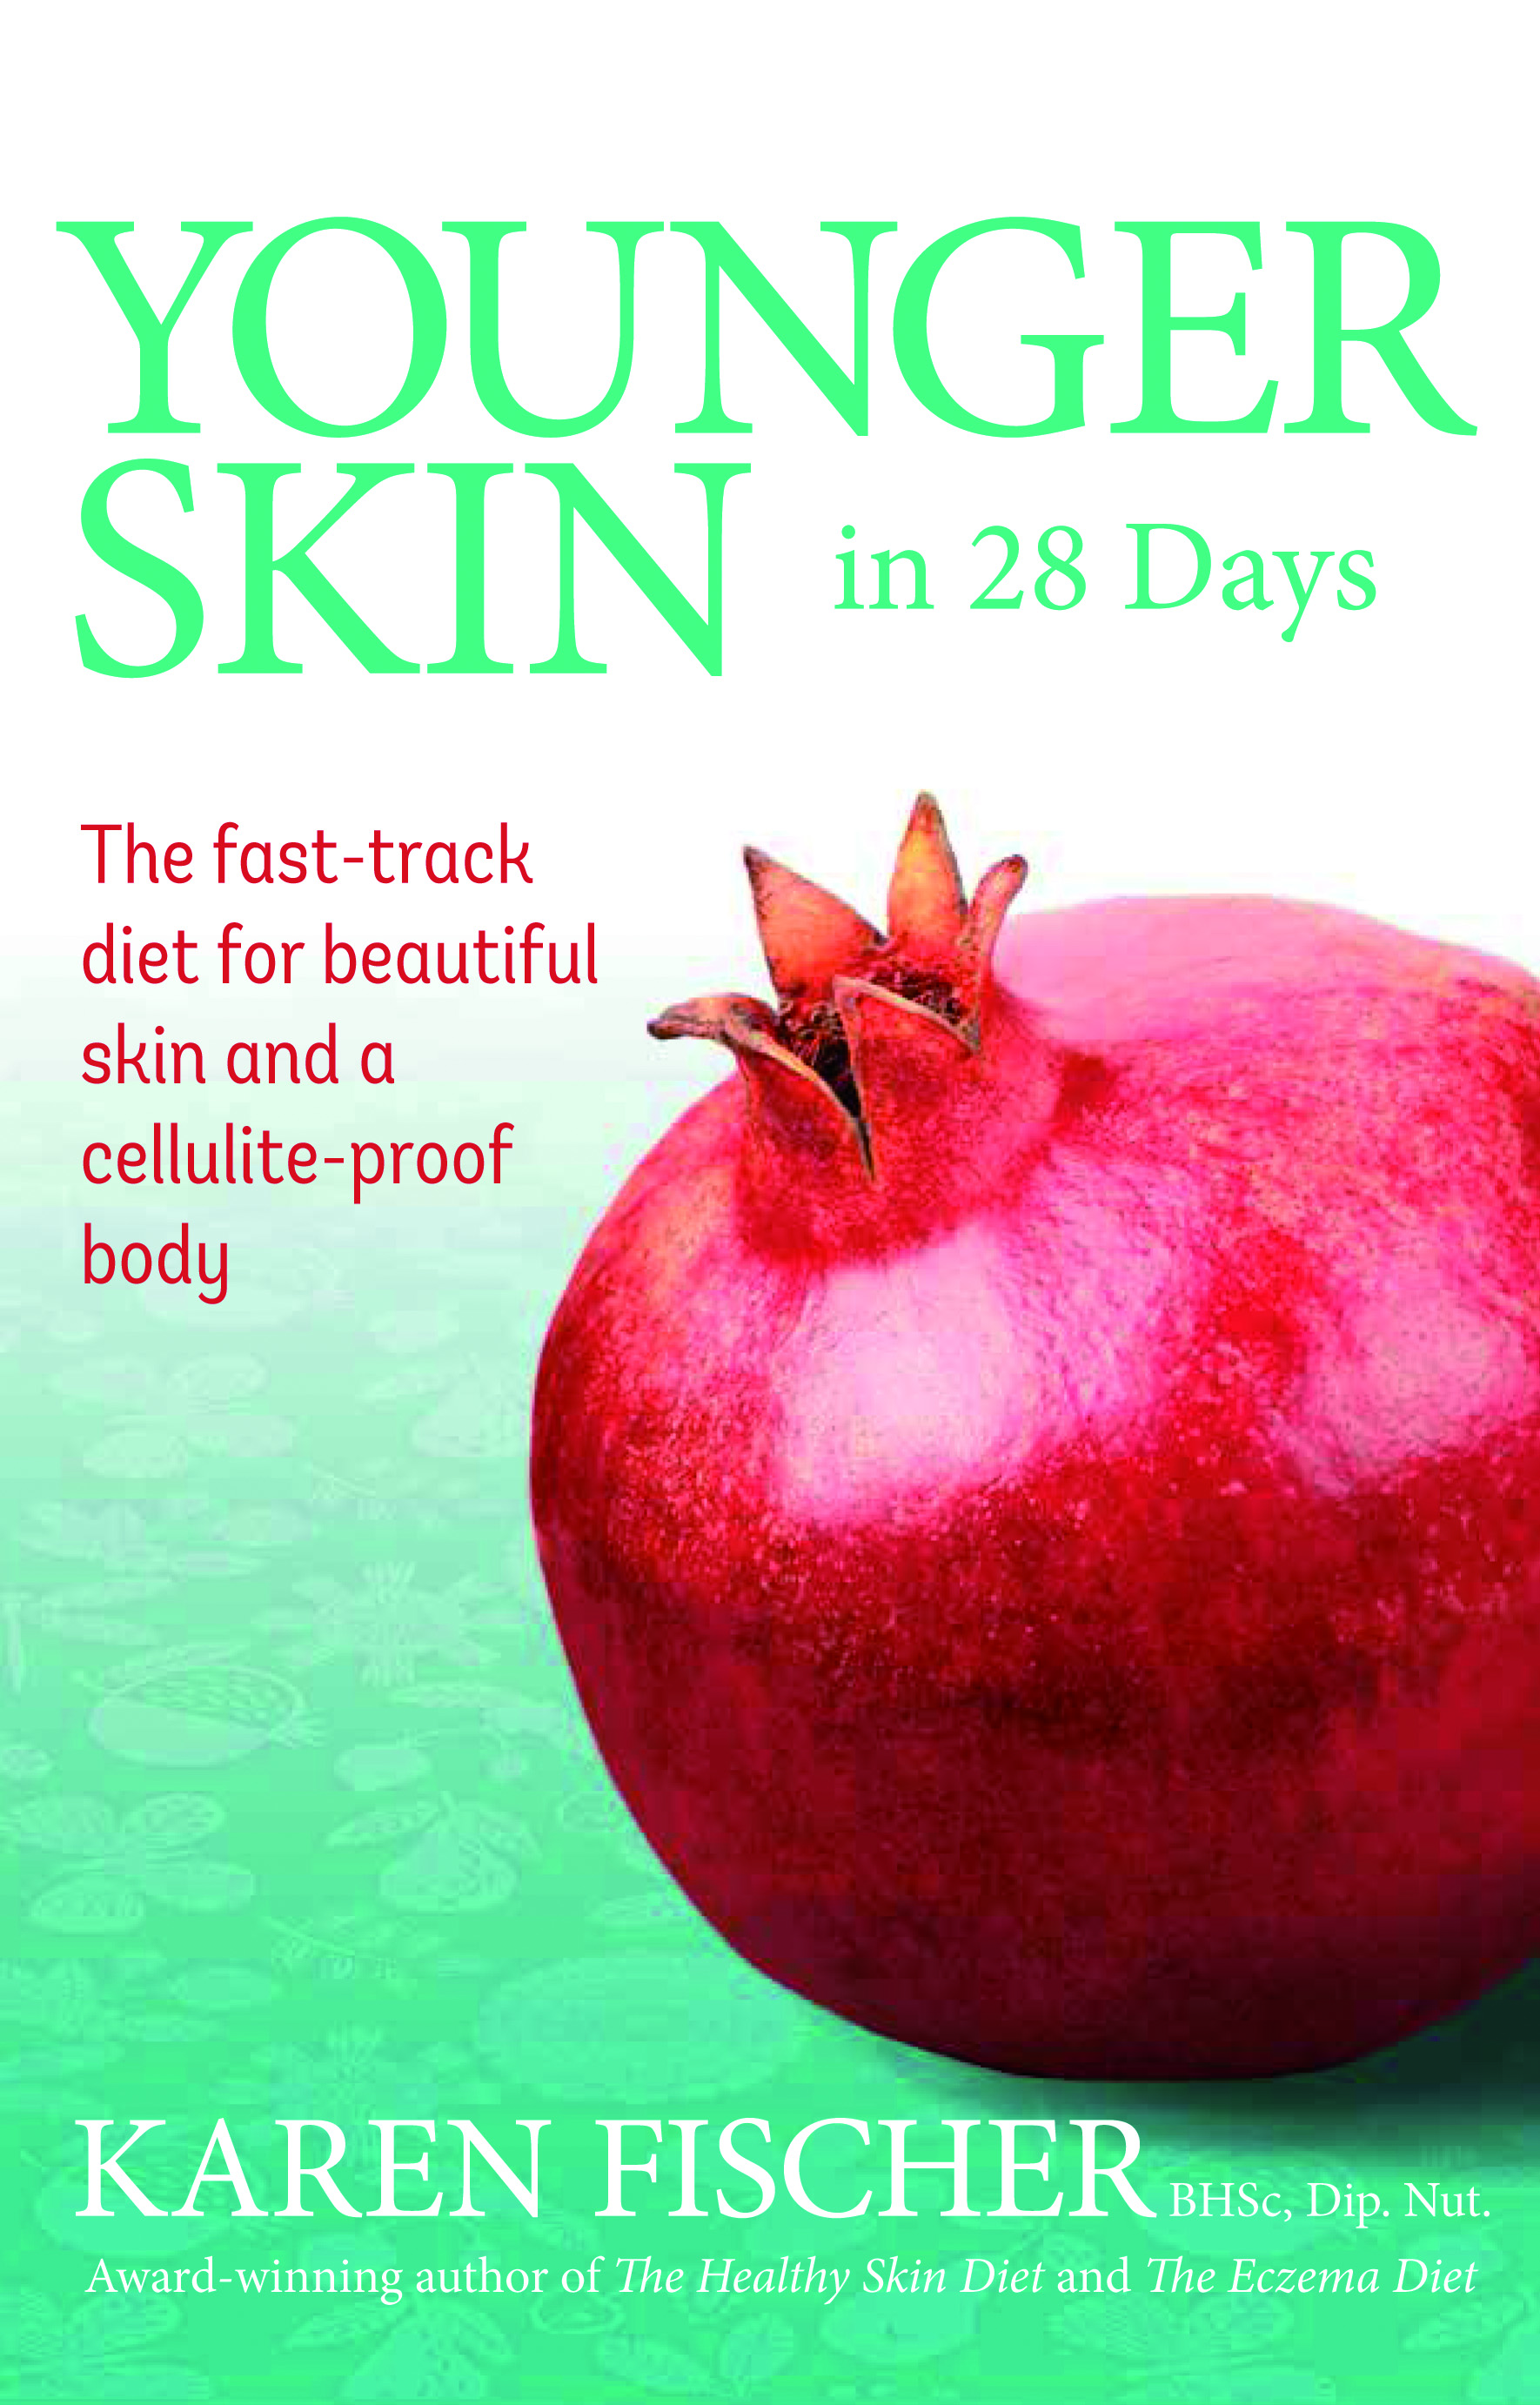 Younger Skin in 28 Days: The Fast-Track Diet for Beautiful Skin and a CelluliteProof Body